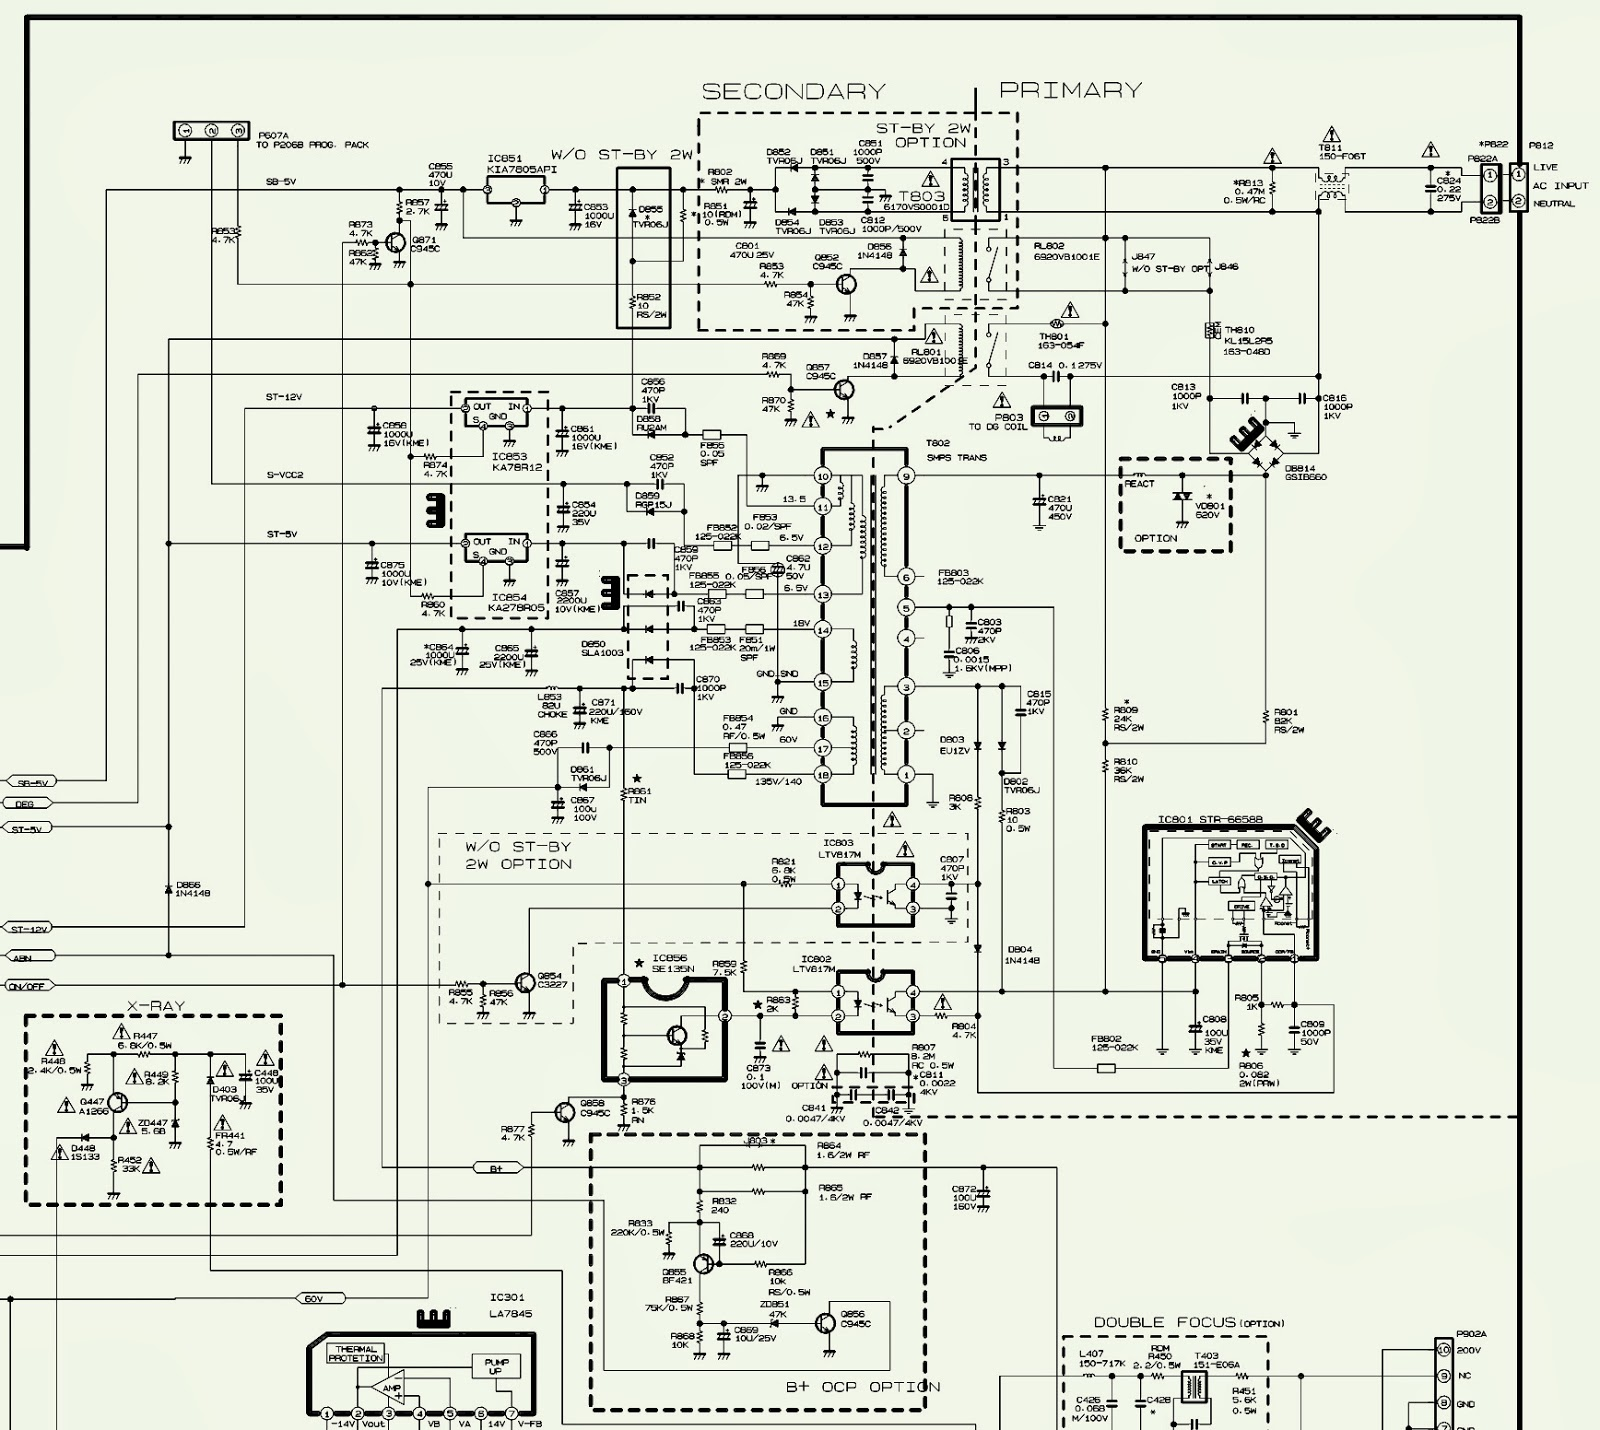 hight resolution of samsung tv power supply schematic power supply circuit diagram switch mode power supply circuit diagram also samsung microwave wiring